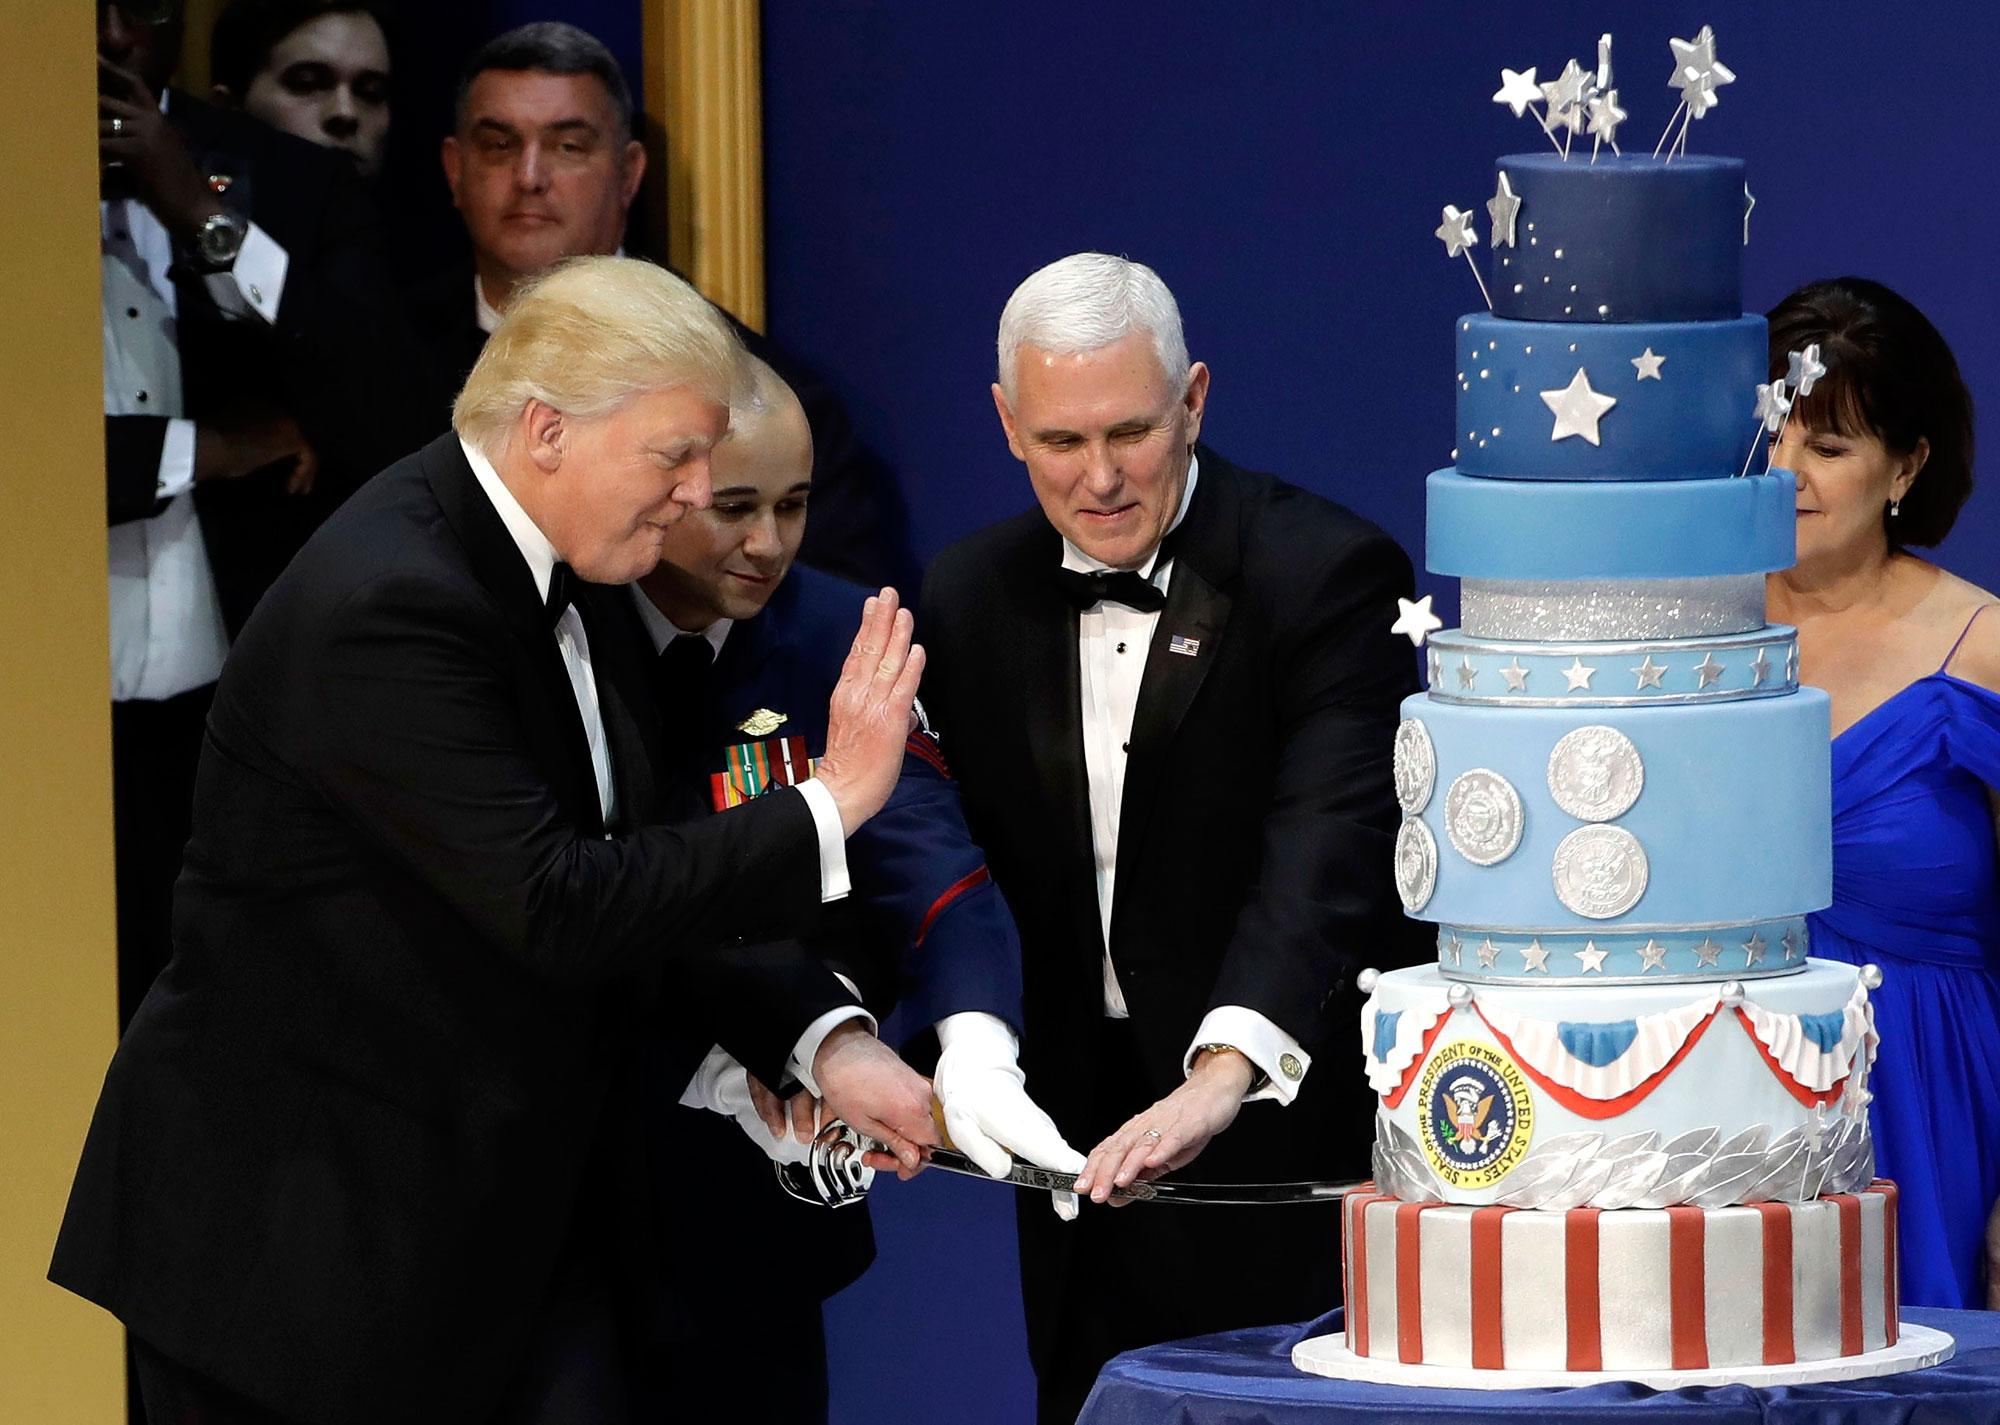 Did Donald Trump Plagiarize His Inauguration Cake? Obama's Baker Thinks So